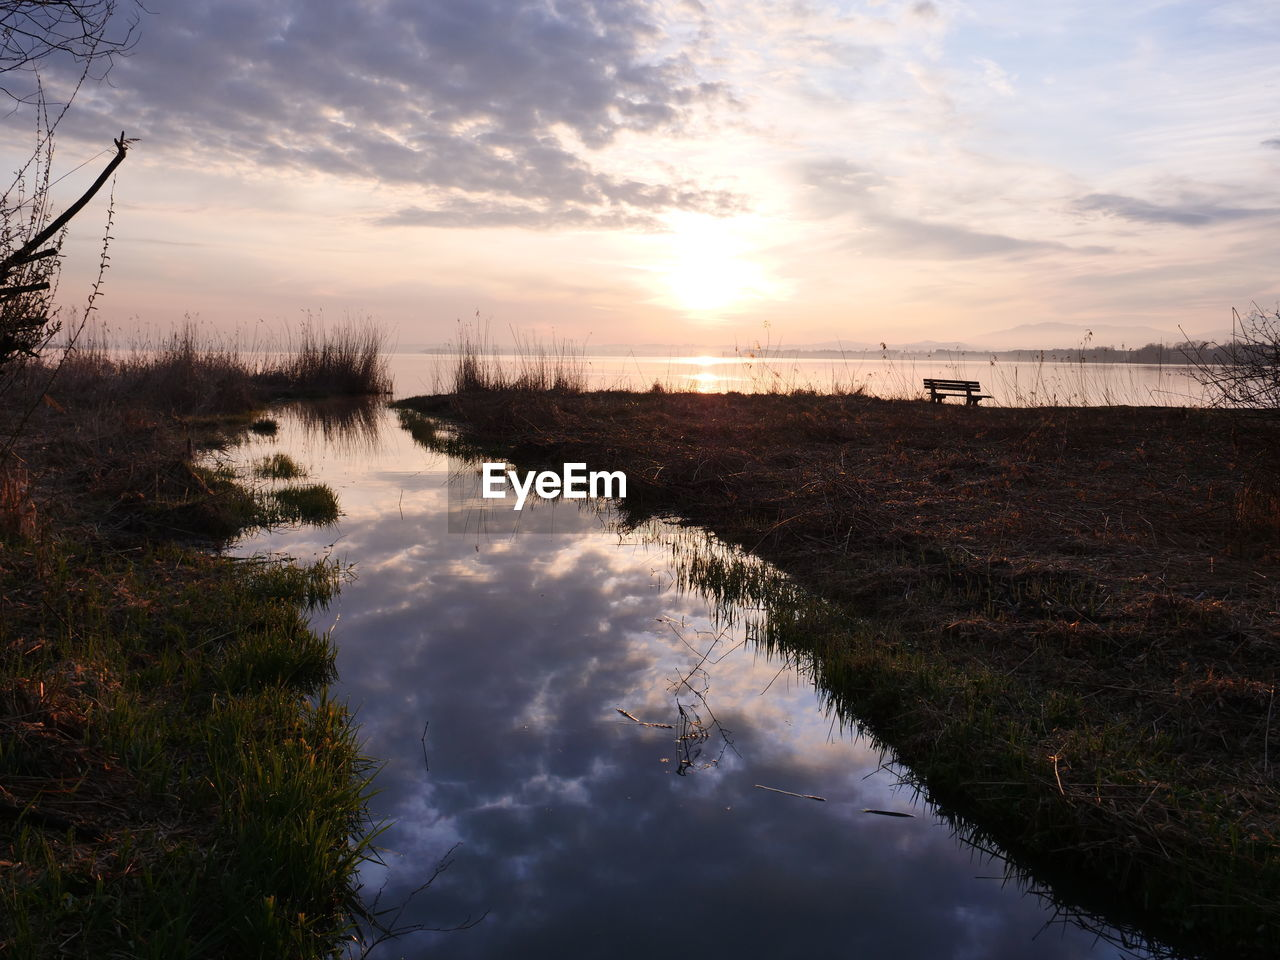 sky, water, cloud - sky, sunset, scenics - nature, nature, tranquility, tranquil scene, plant, no people, beauty in nature, reflection, grass, non-urban scene, land, lake, outdoors